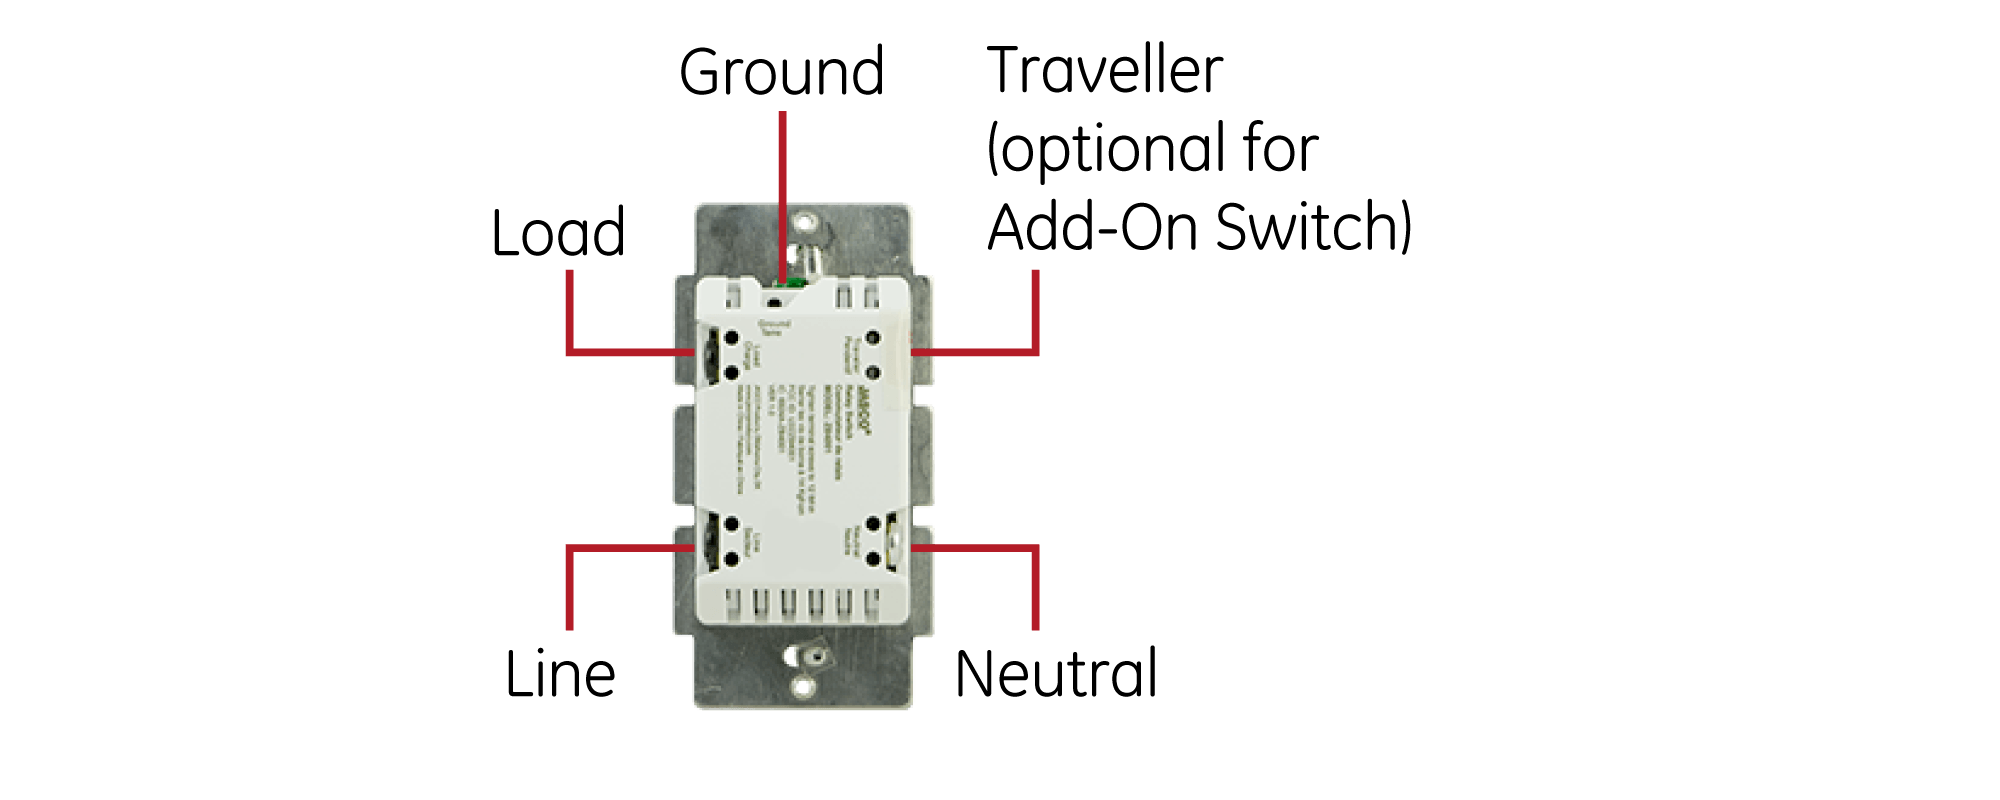 Wiring Diagram | GE Zigbee Smart Wall Switch